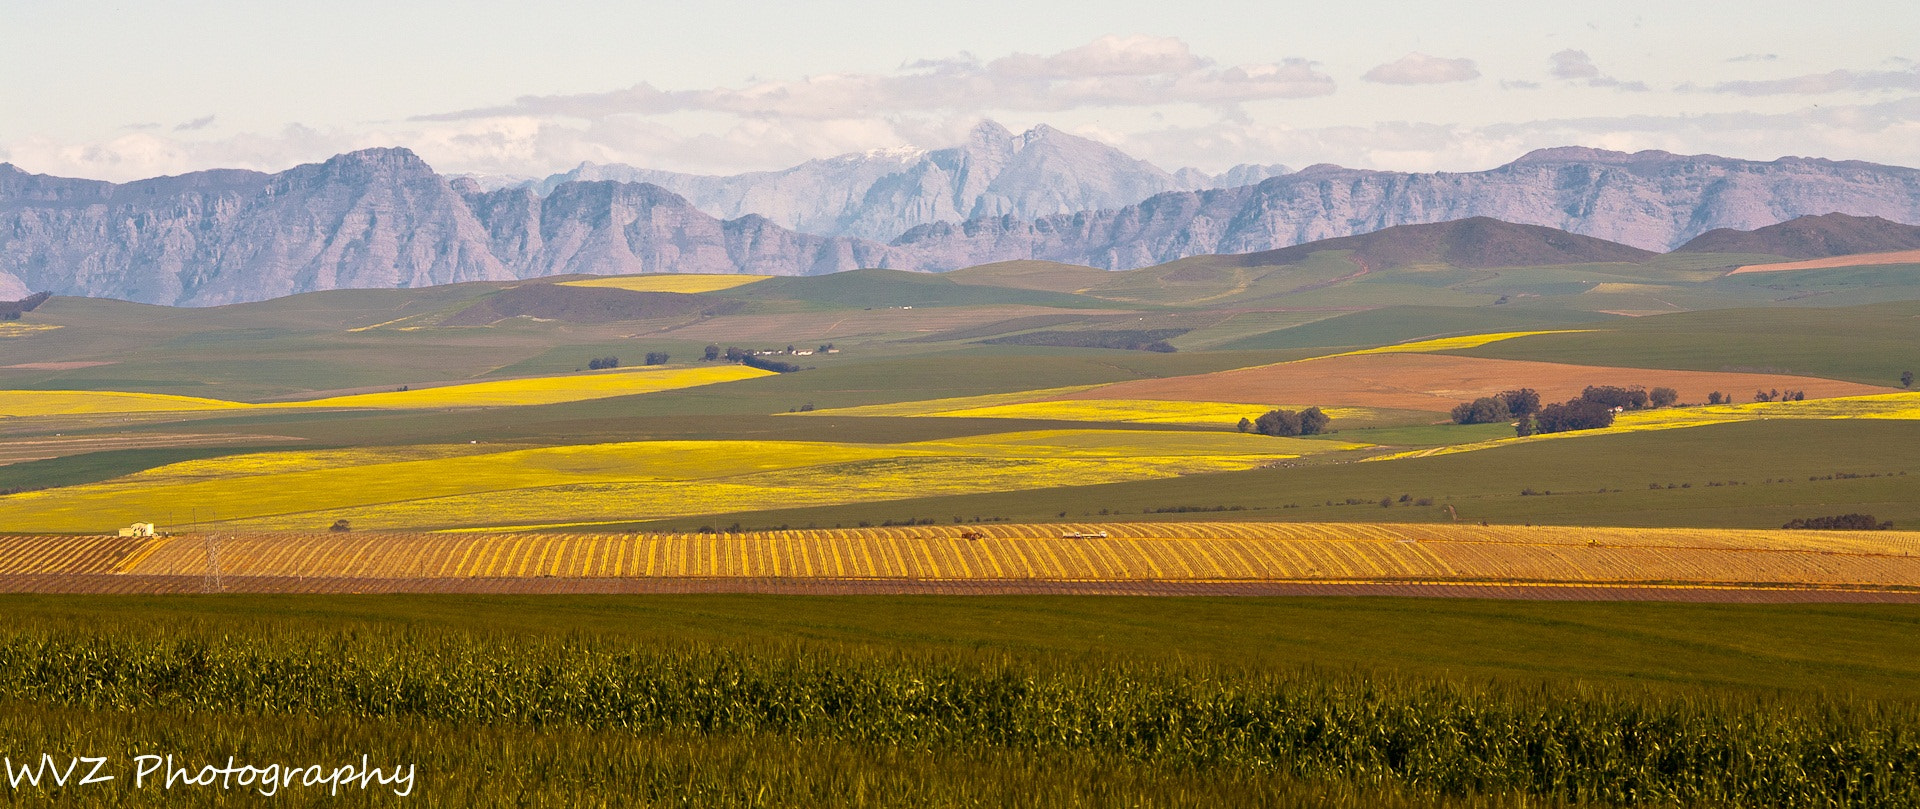 Photograph Canola fields by Wendy Van Zyl on 500px